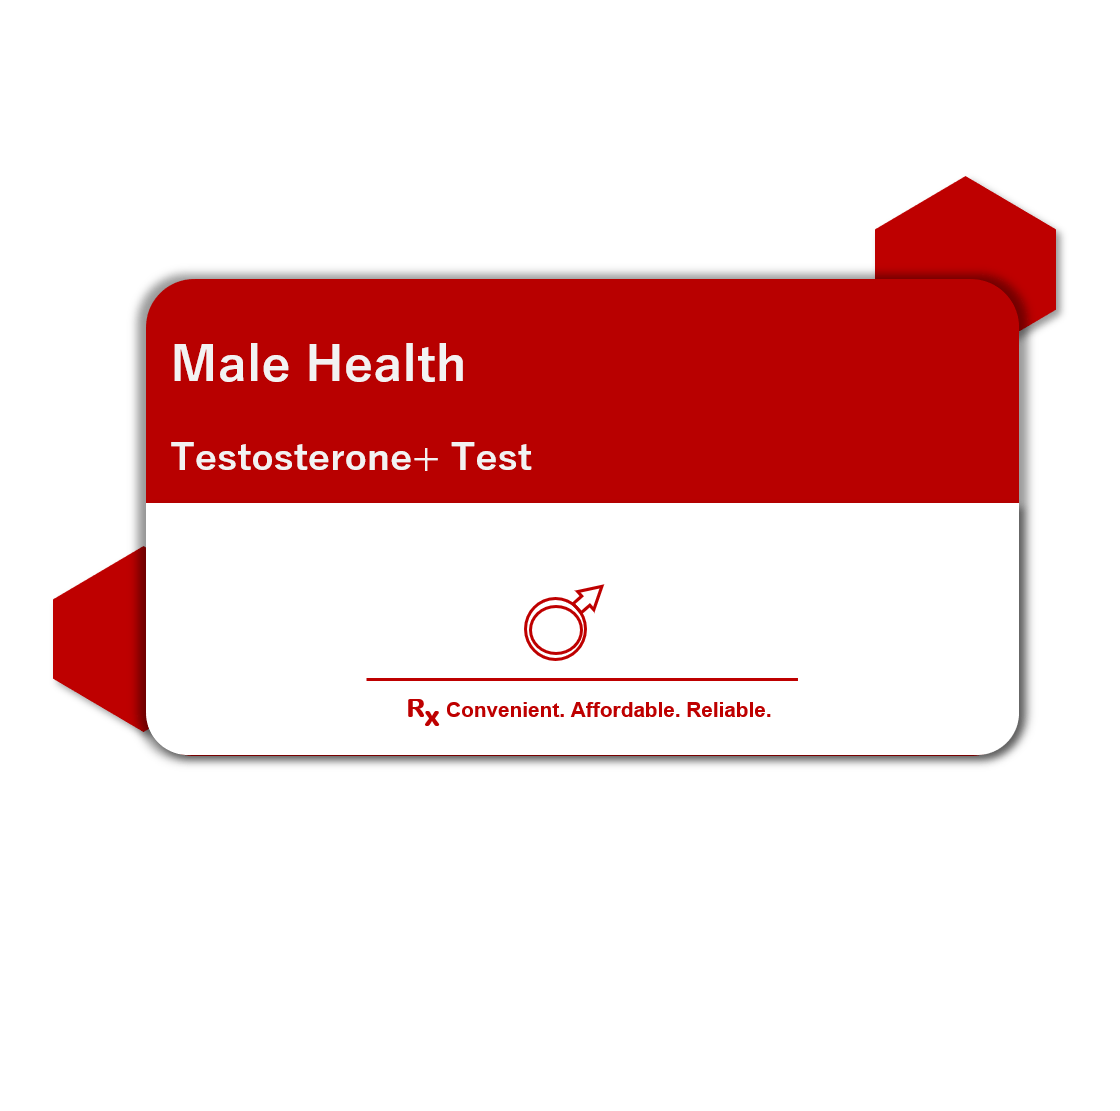 Male Health Test